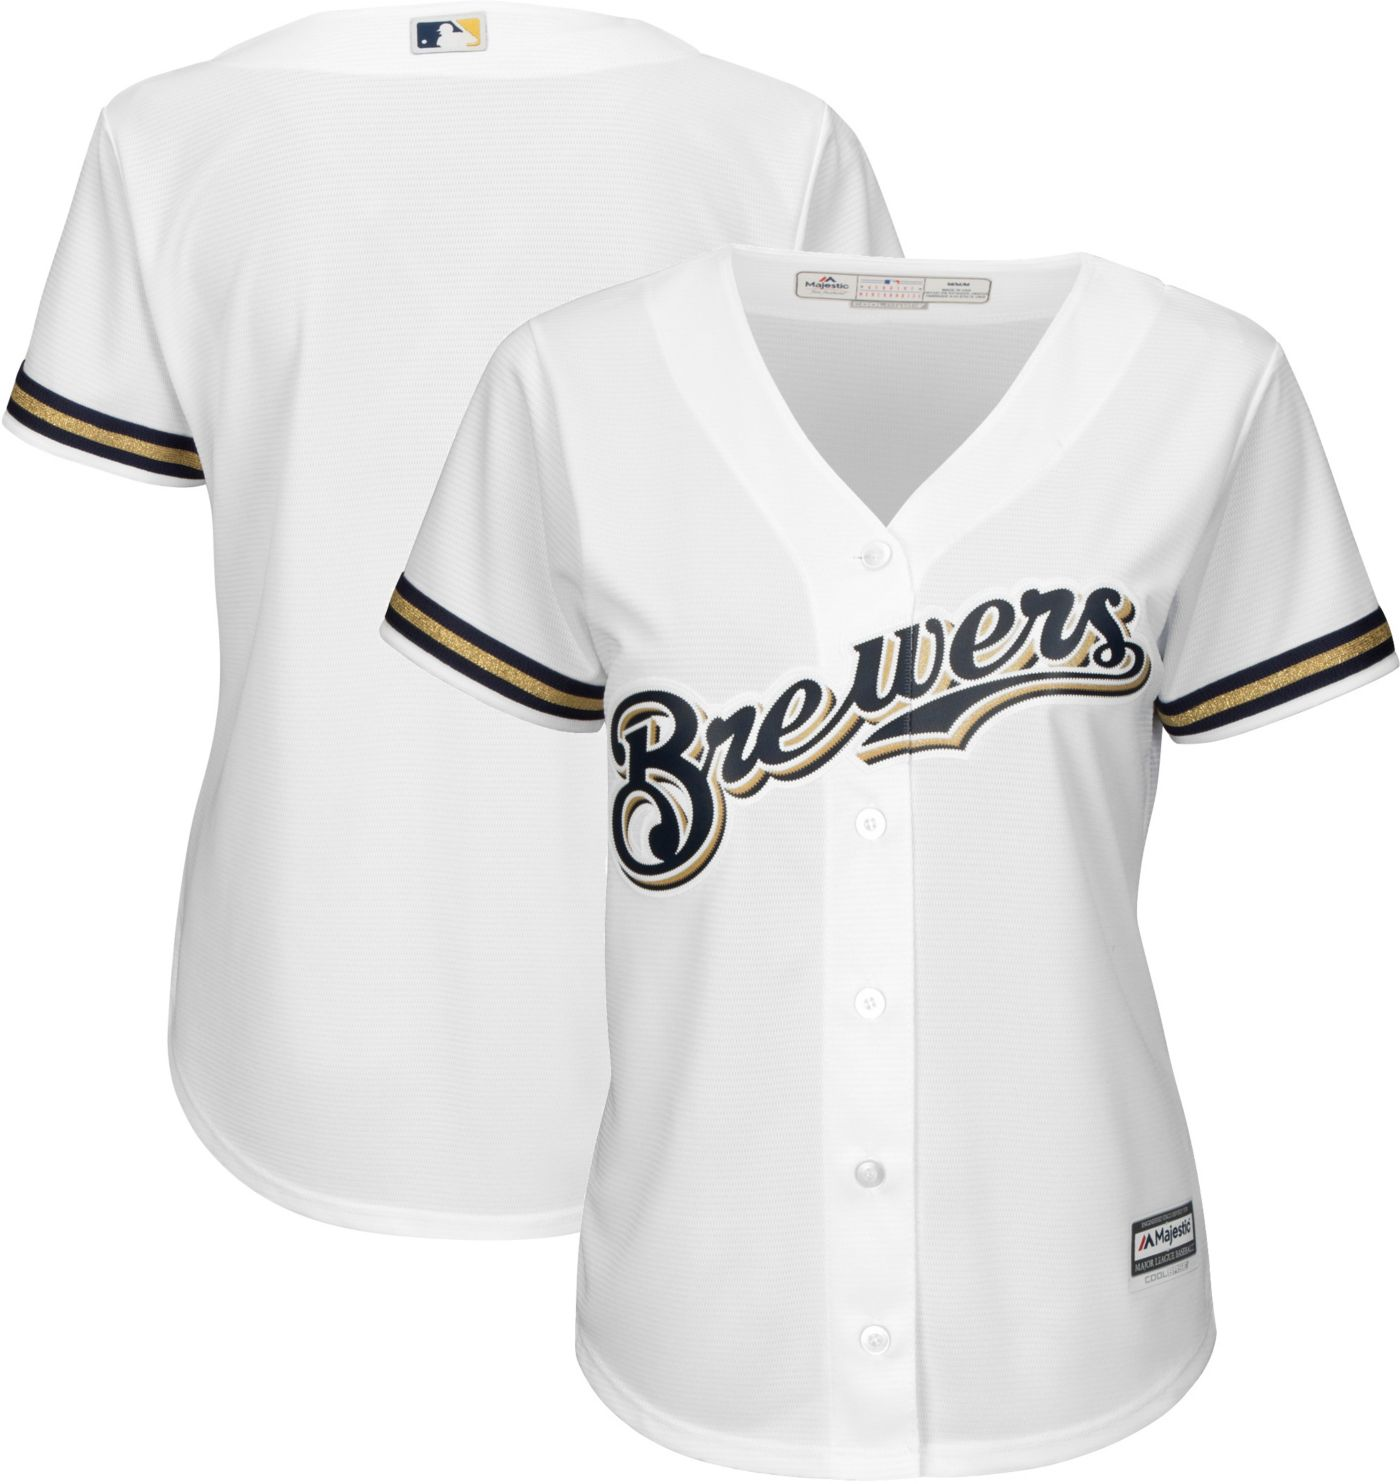 Majestic Women's Replica Milwaukee Brewers Cool Base Home White Jersey